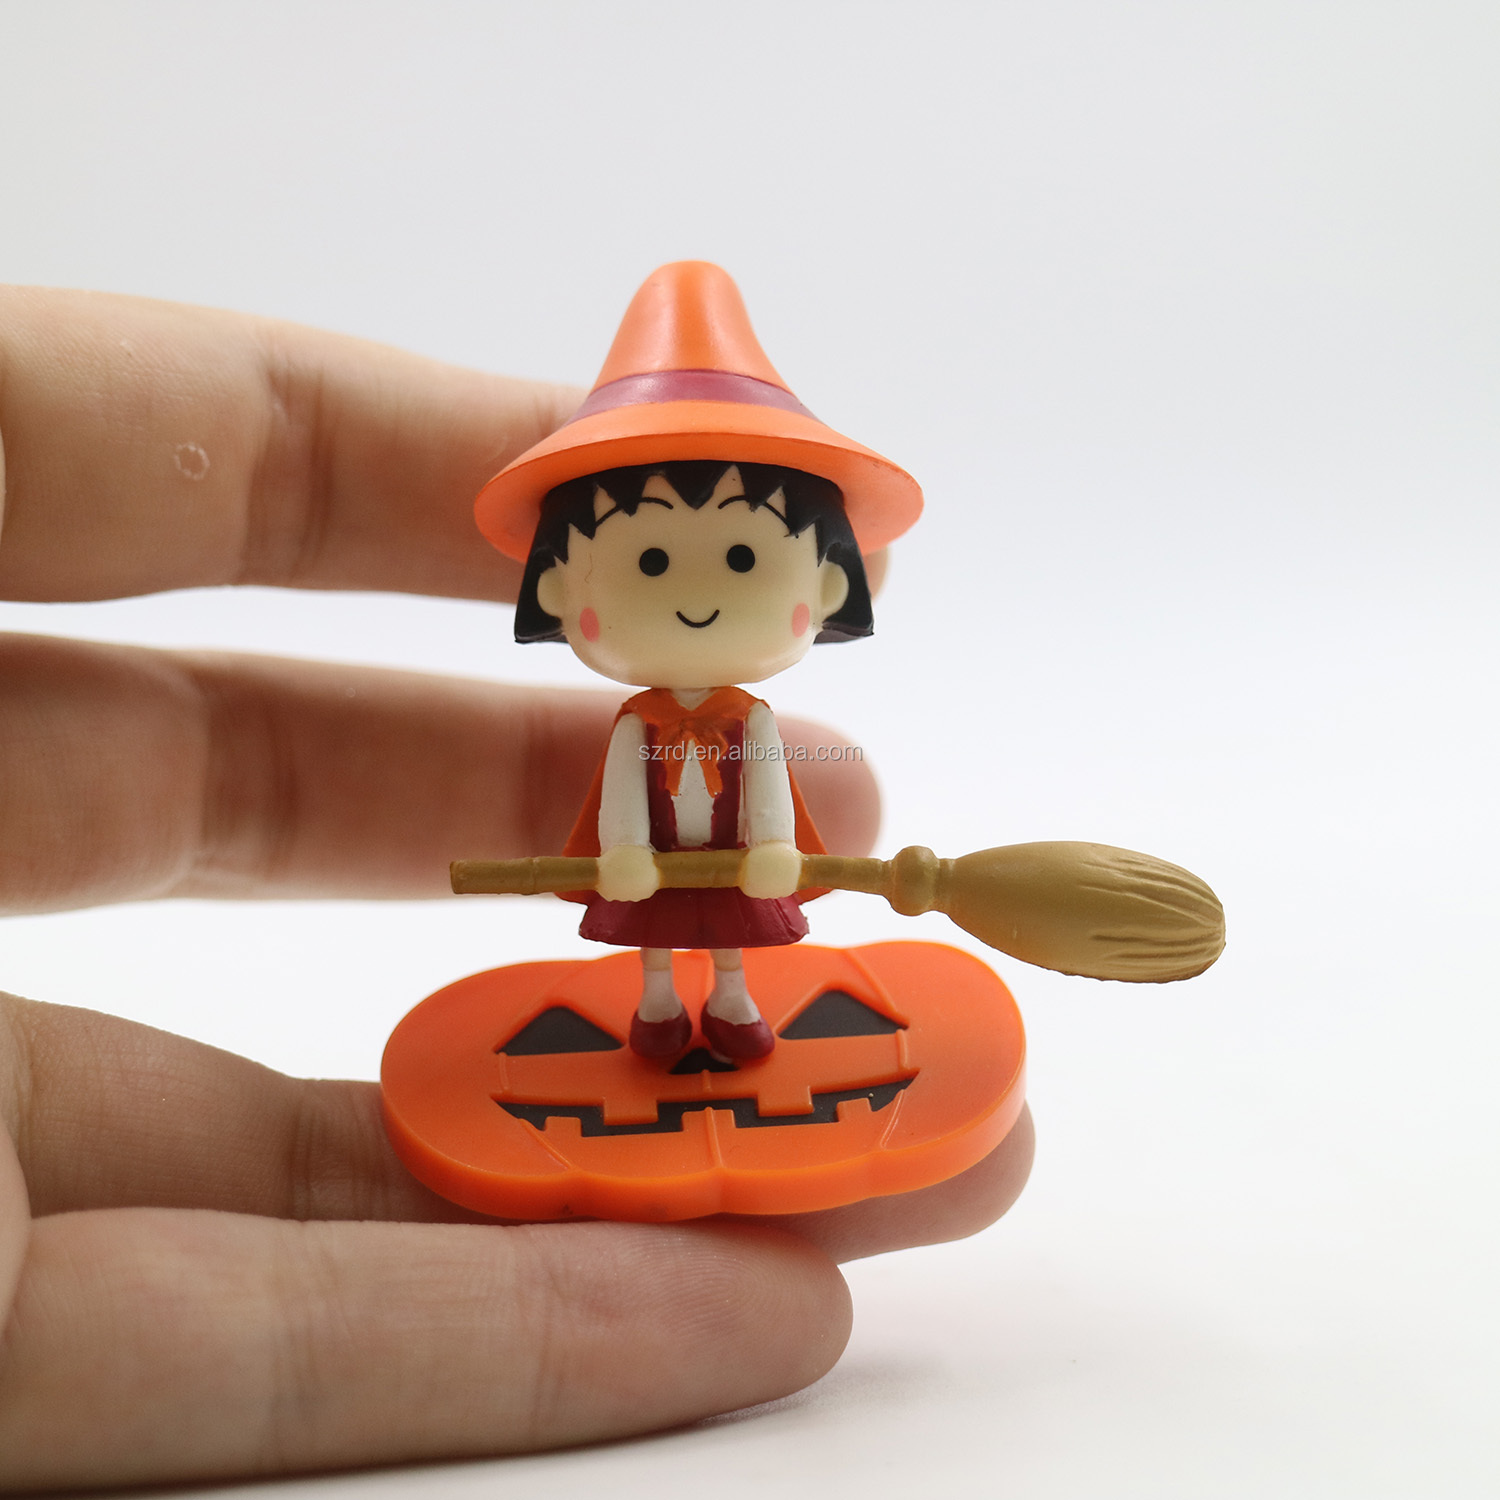 Hot selling custom pvc mini plastic figure key chain toy made in china